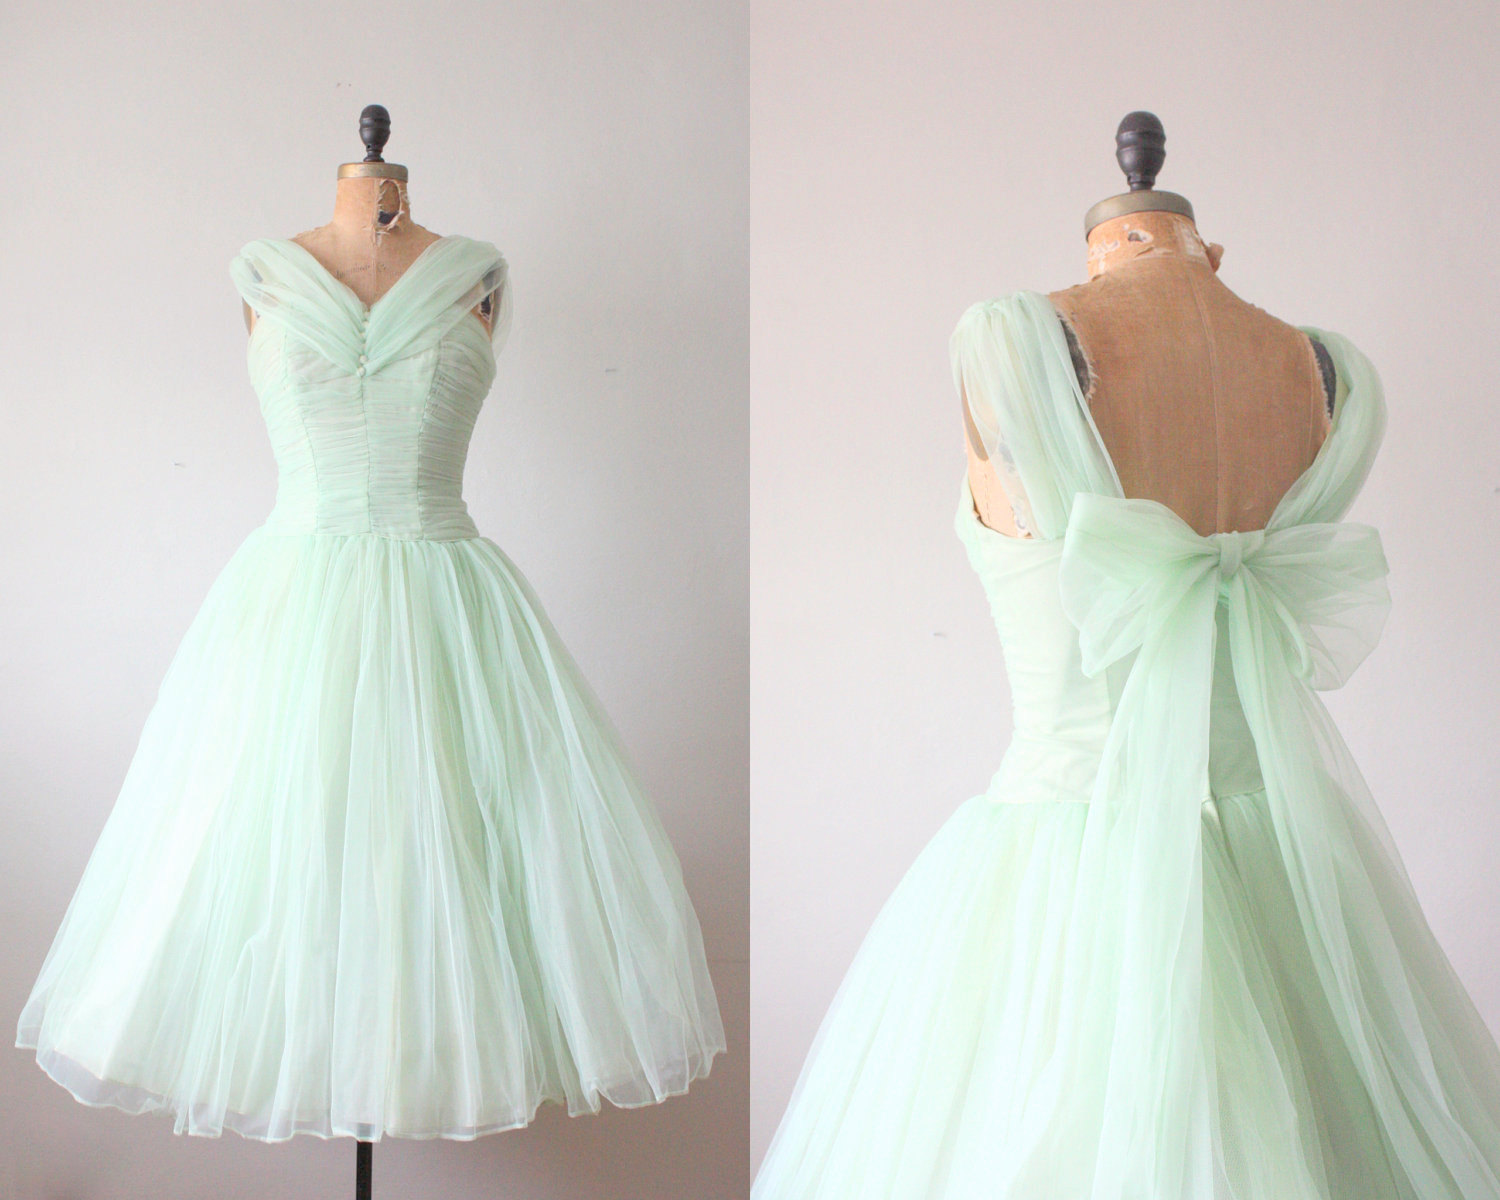 The fine living muse 2013 trending color for spring and for Mint wedding guest dress